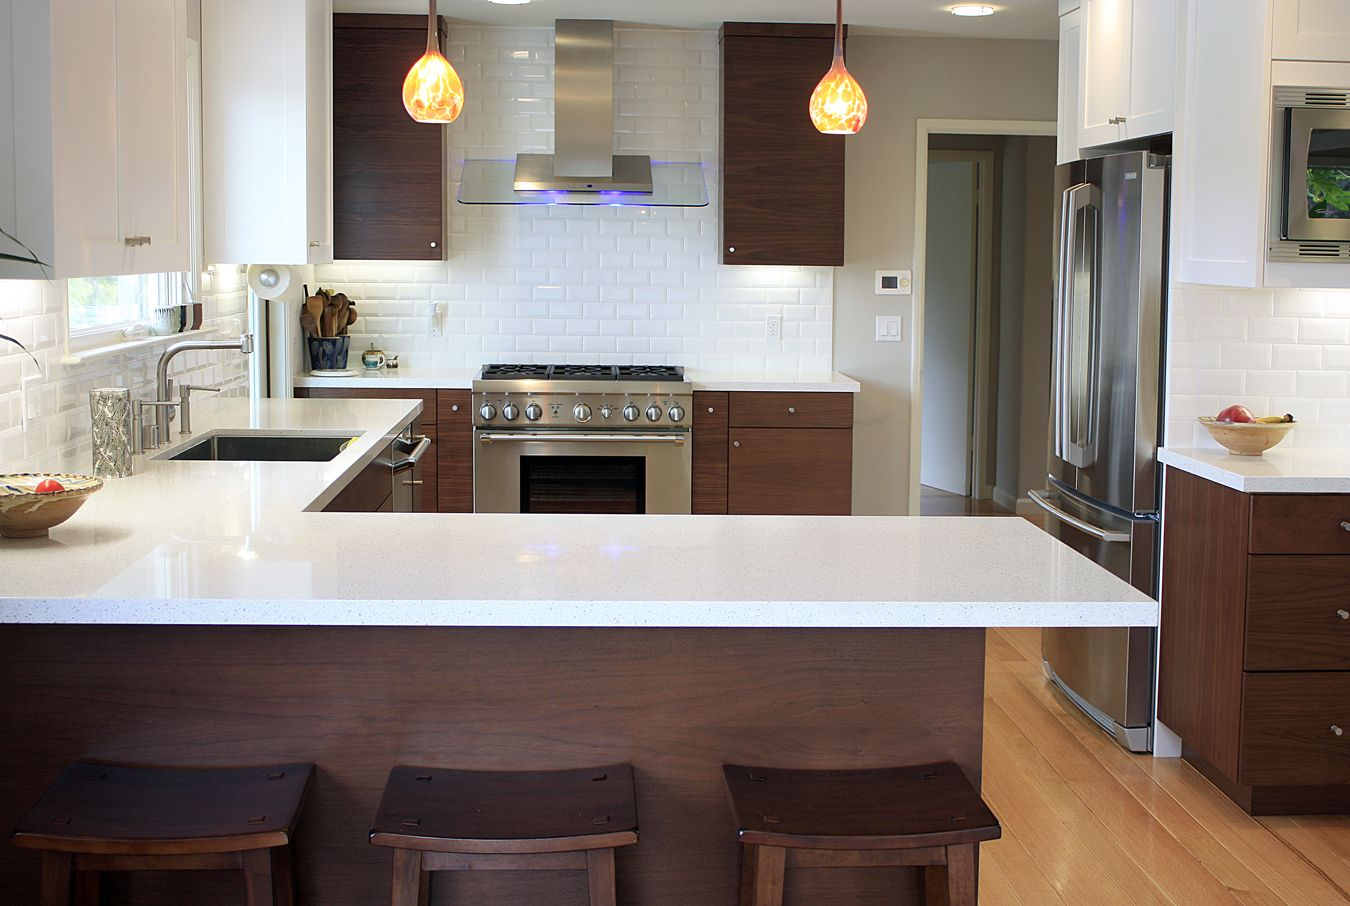 Dupont Moretti Cabinet Caesarstone Quartz Countertops Are Not Only Gorgeous They Re Easy